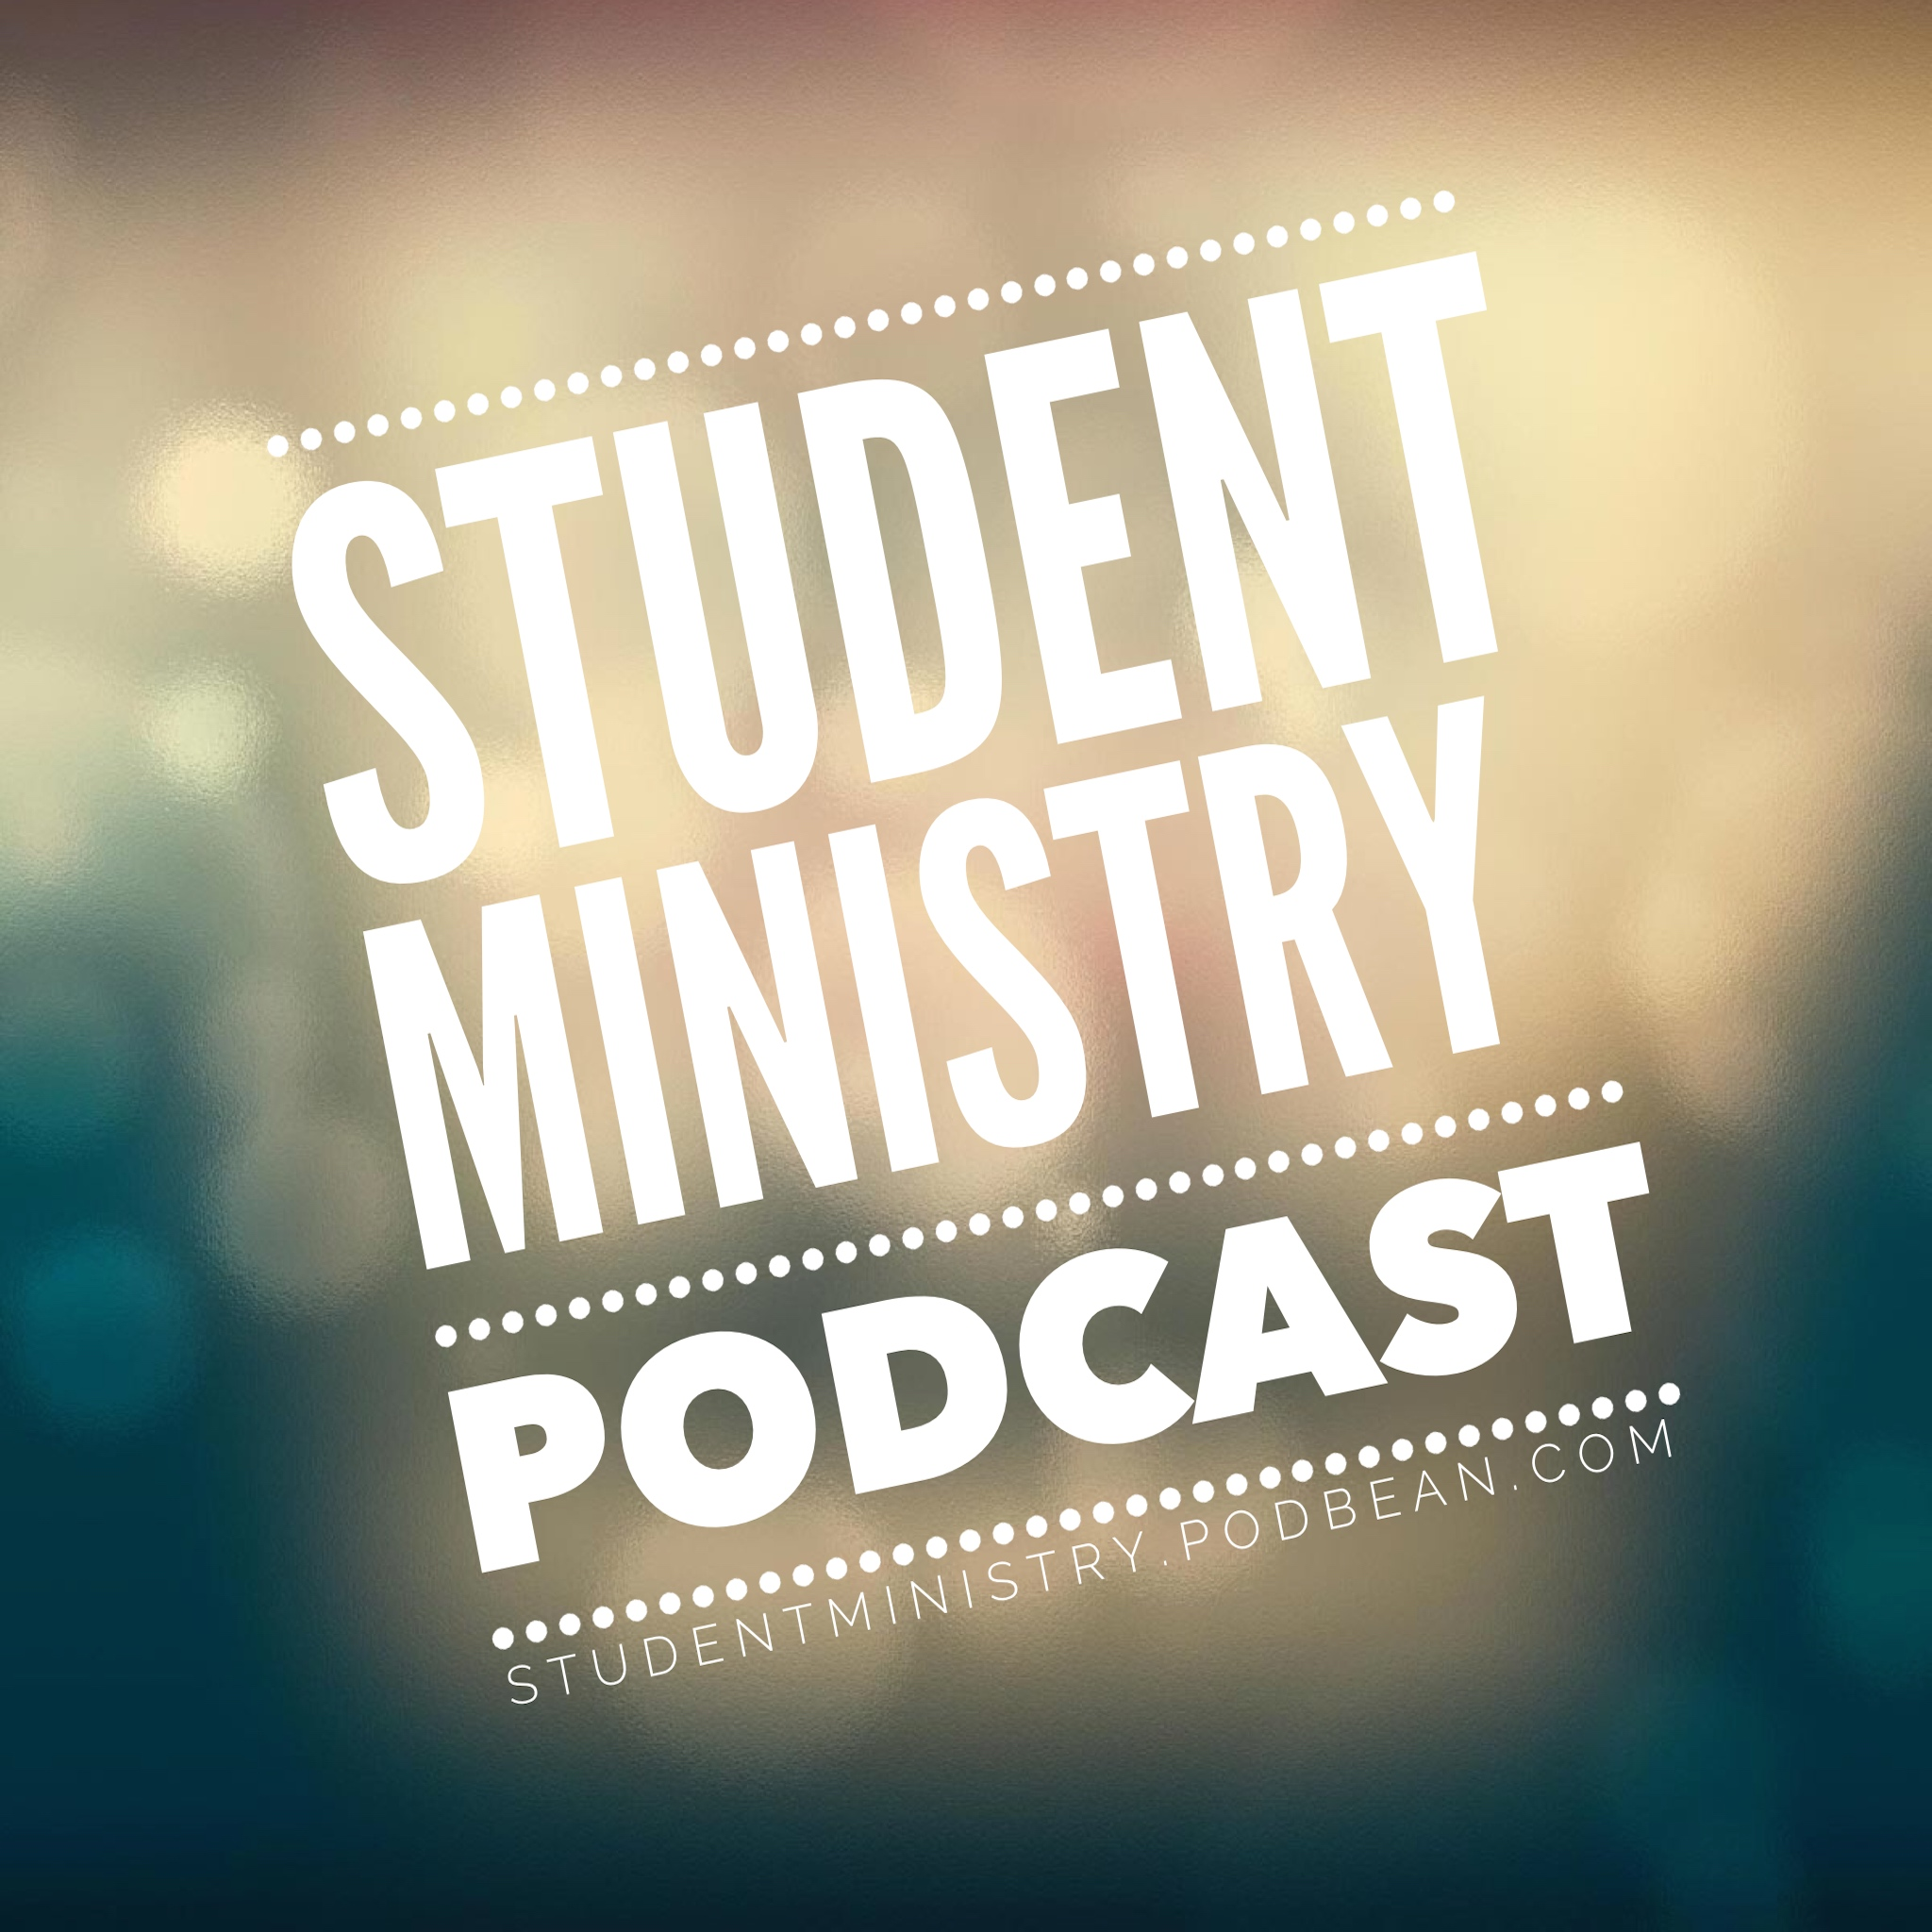 000: Welcome to The Student Ministry Podcast